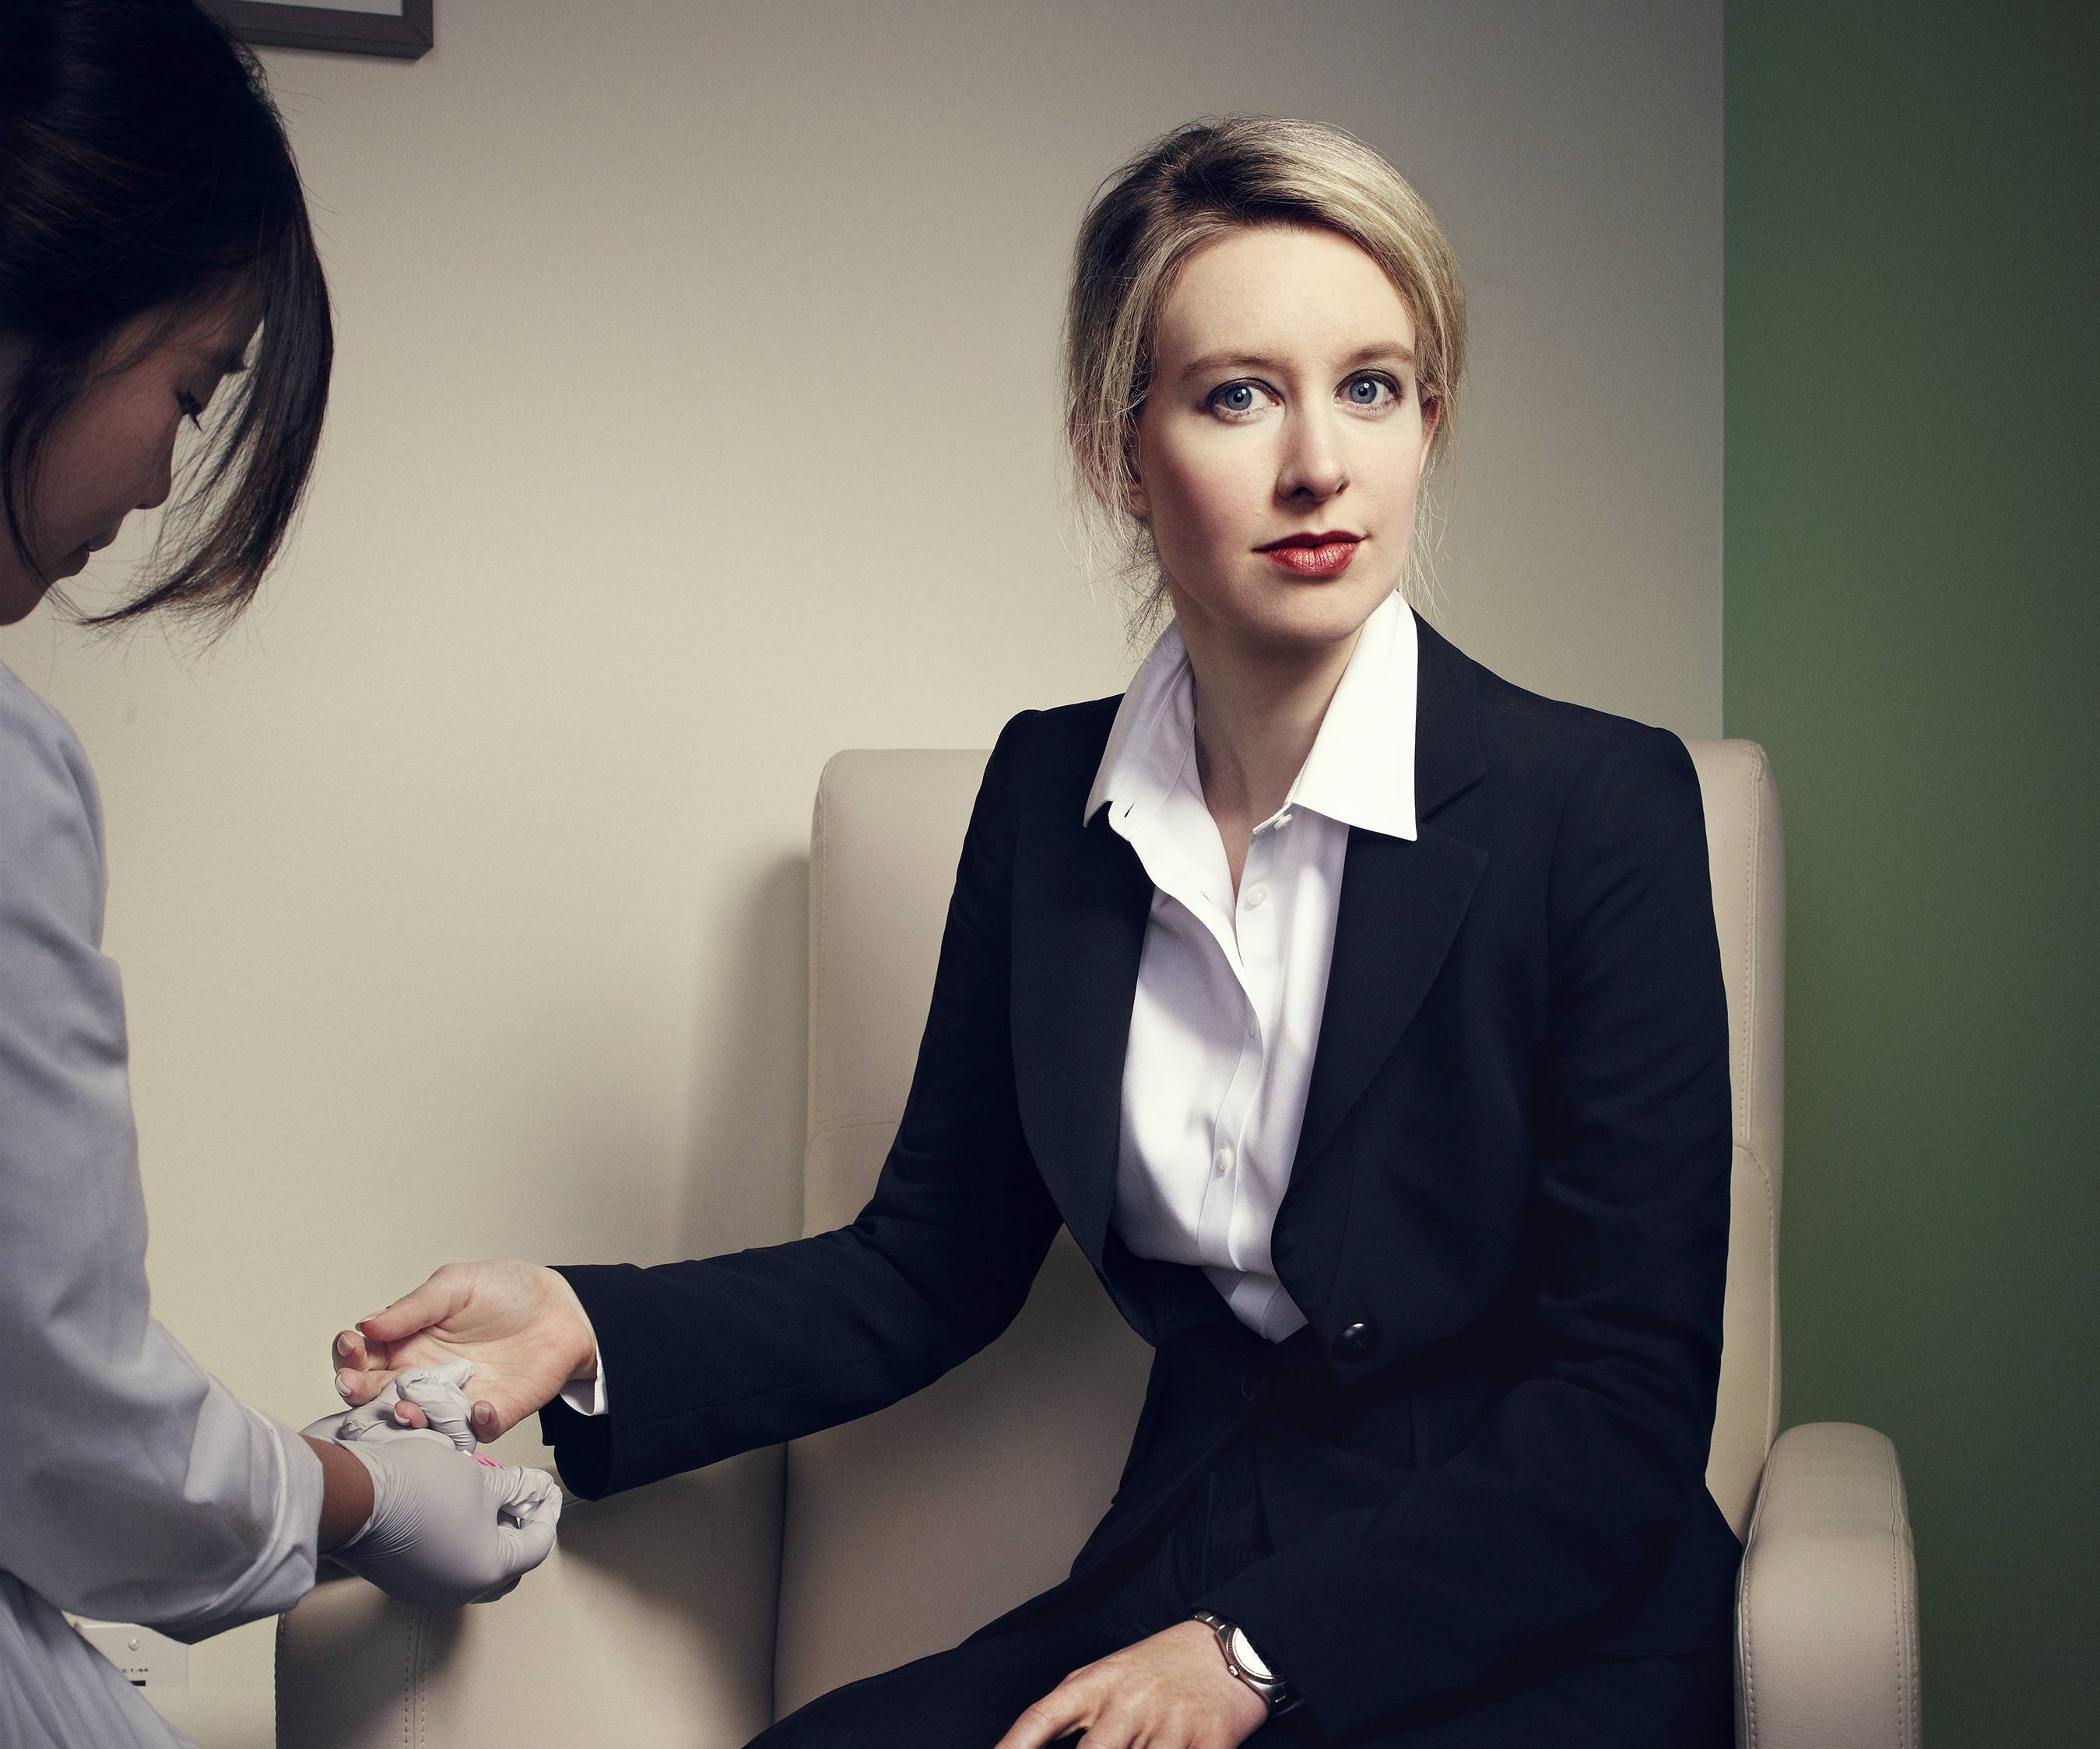 Founder and CEO Elizabeth Holmes undergoing the blood test she invented at Theranos's headquarters in Palo Alto.